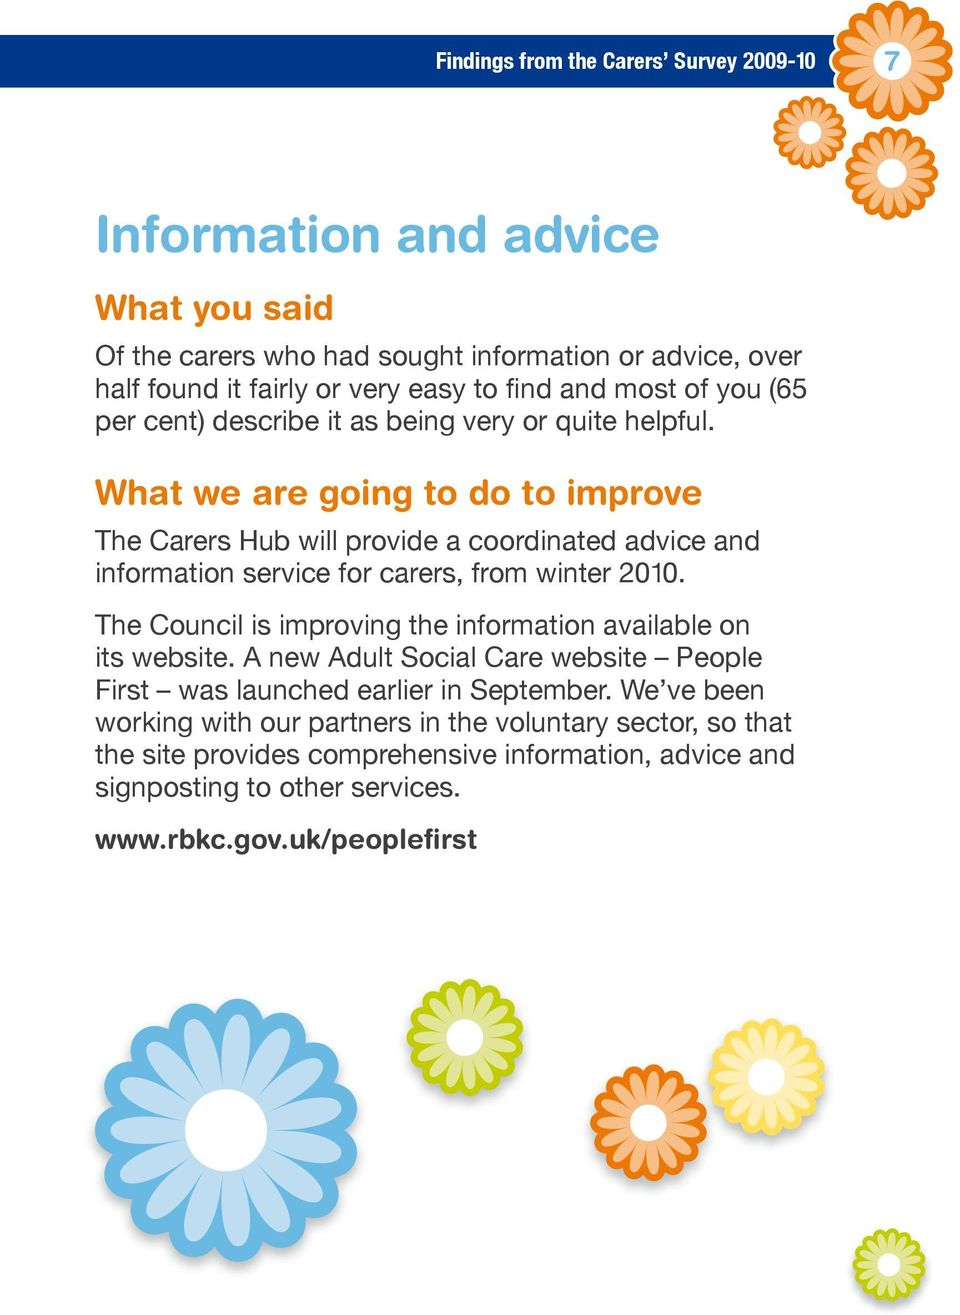 What we are going to do to improve The Carers Hub will provide a coordinated advice and information service for carers, from winter 2010.